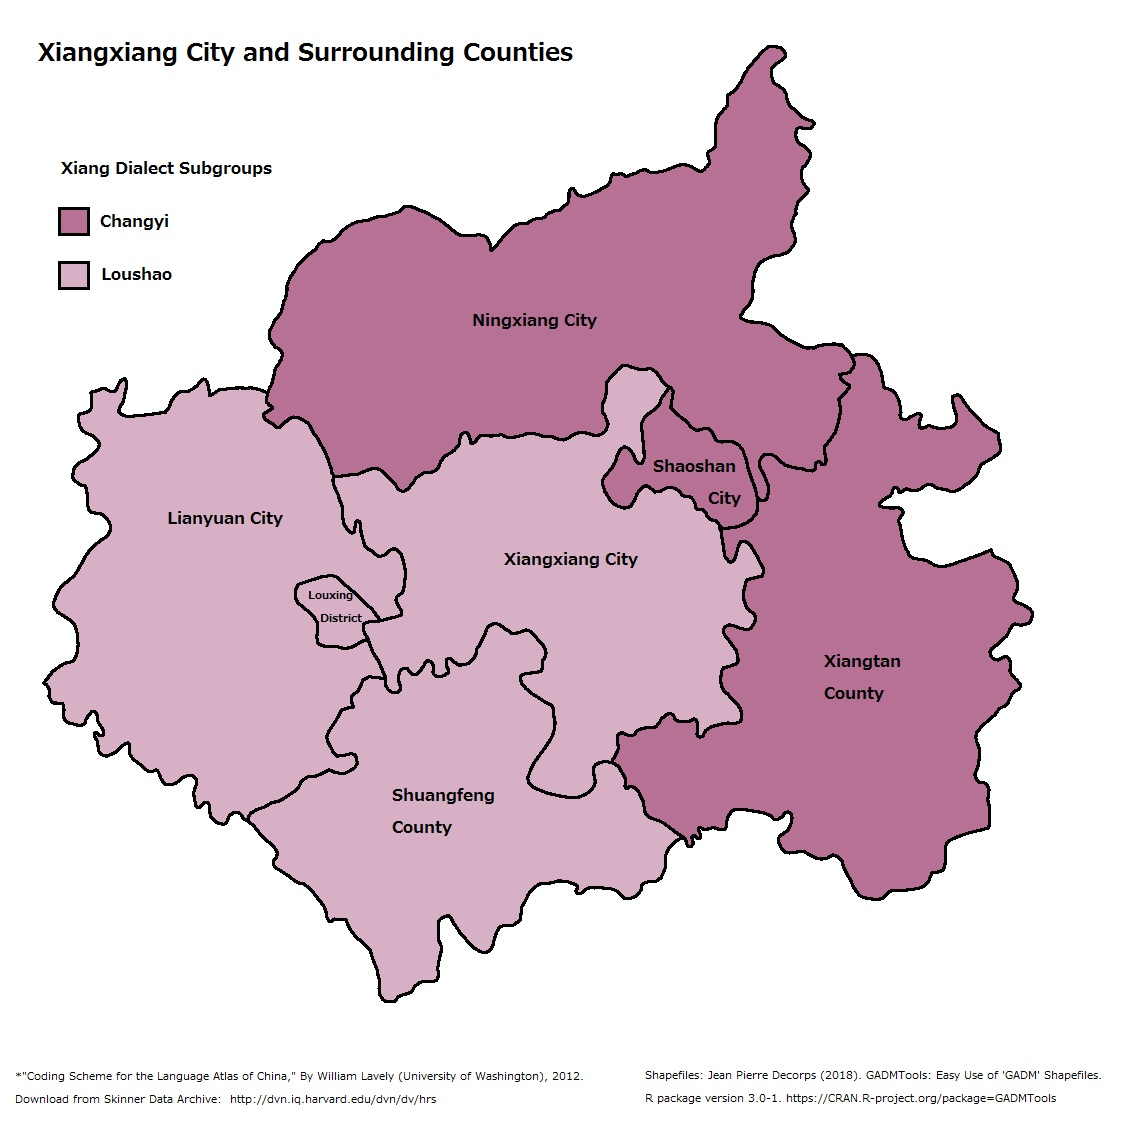 File:Linguistic map of Xiangxiang City and surrounding counties jpg